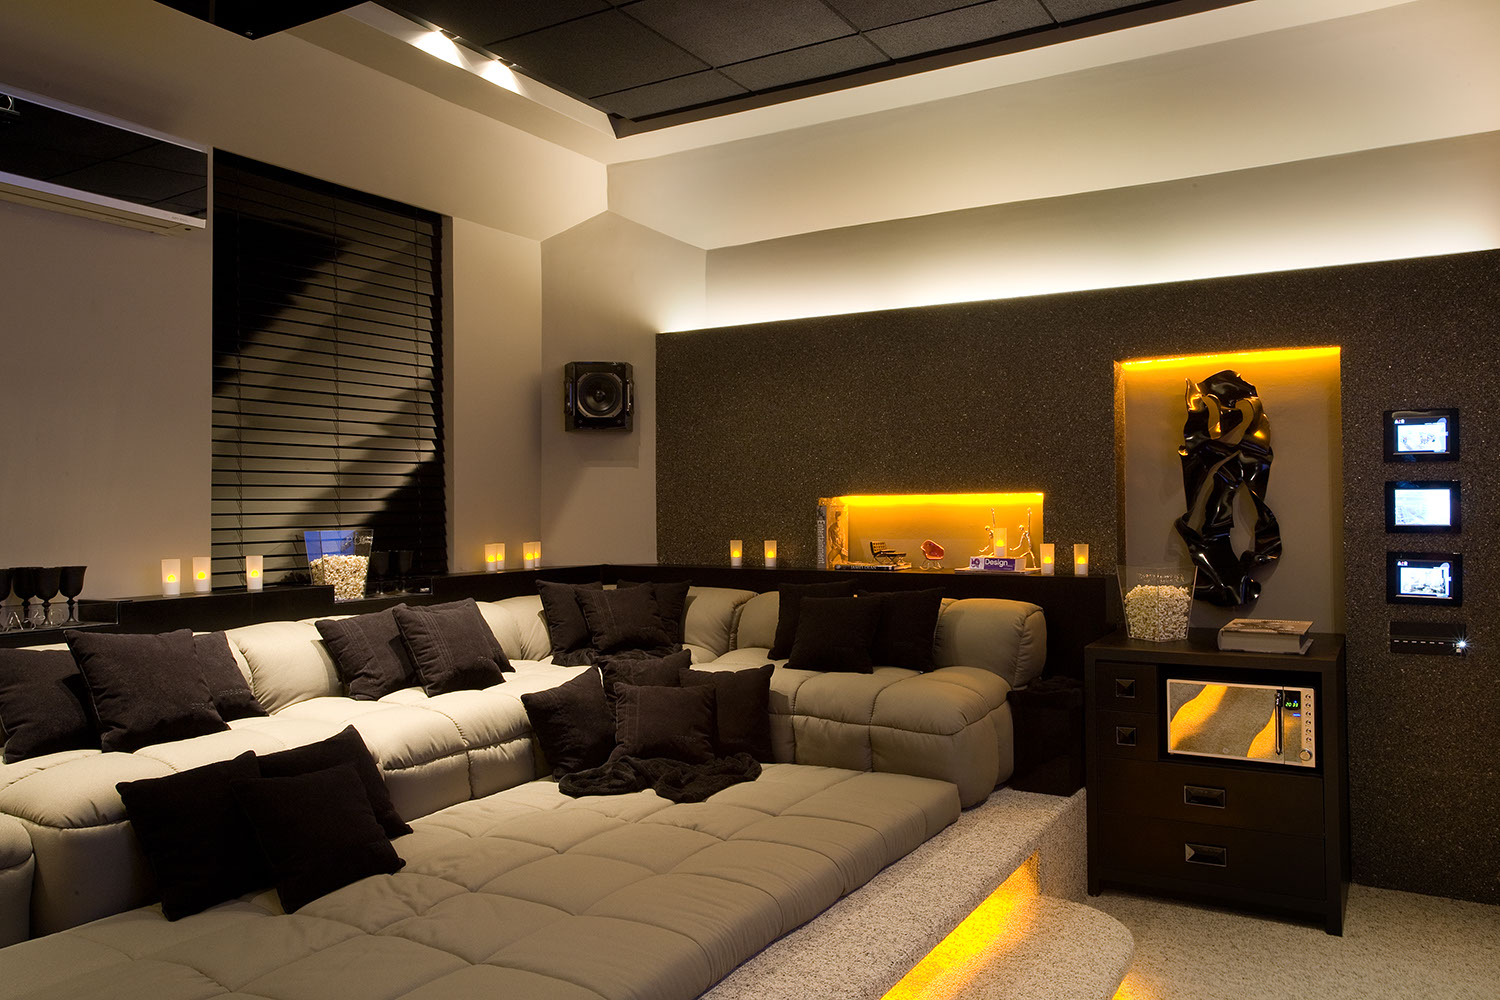 arquitetura e interiores rola um cineminha em casa. Black Bedroom Furniture Sets. Home Design Ideas